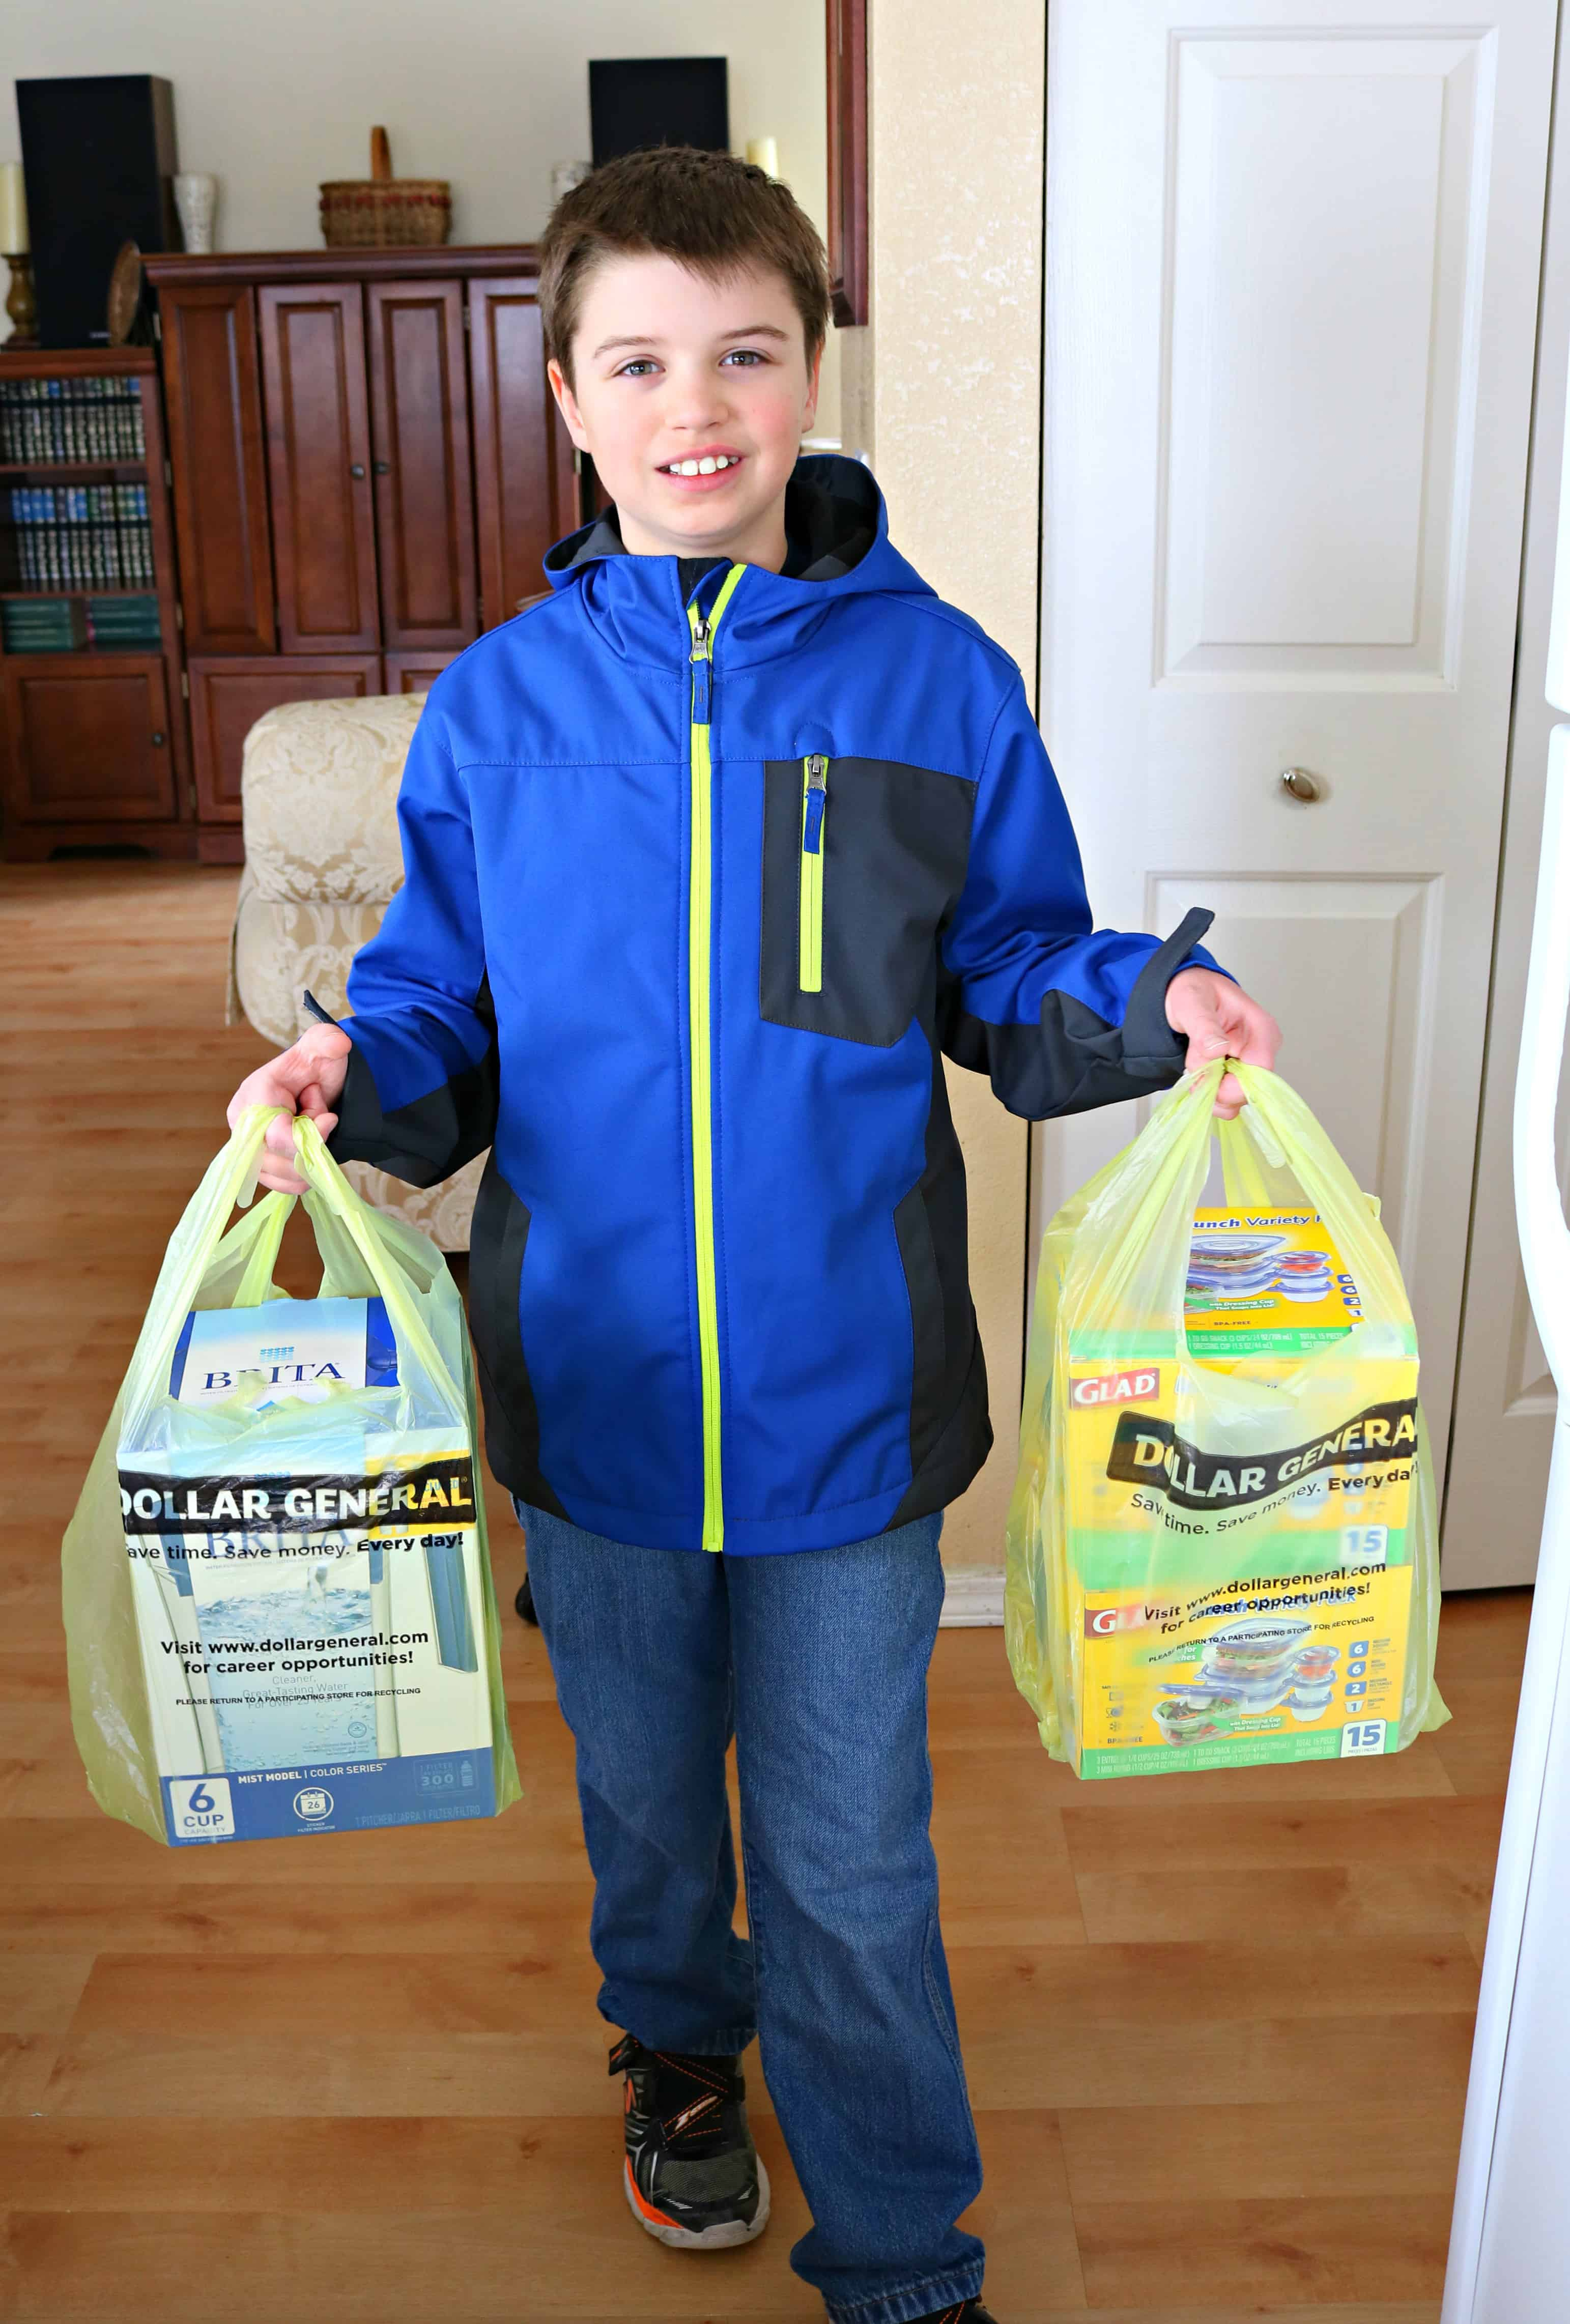 Young boy bringing in grocery bags from Dollar General